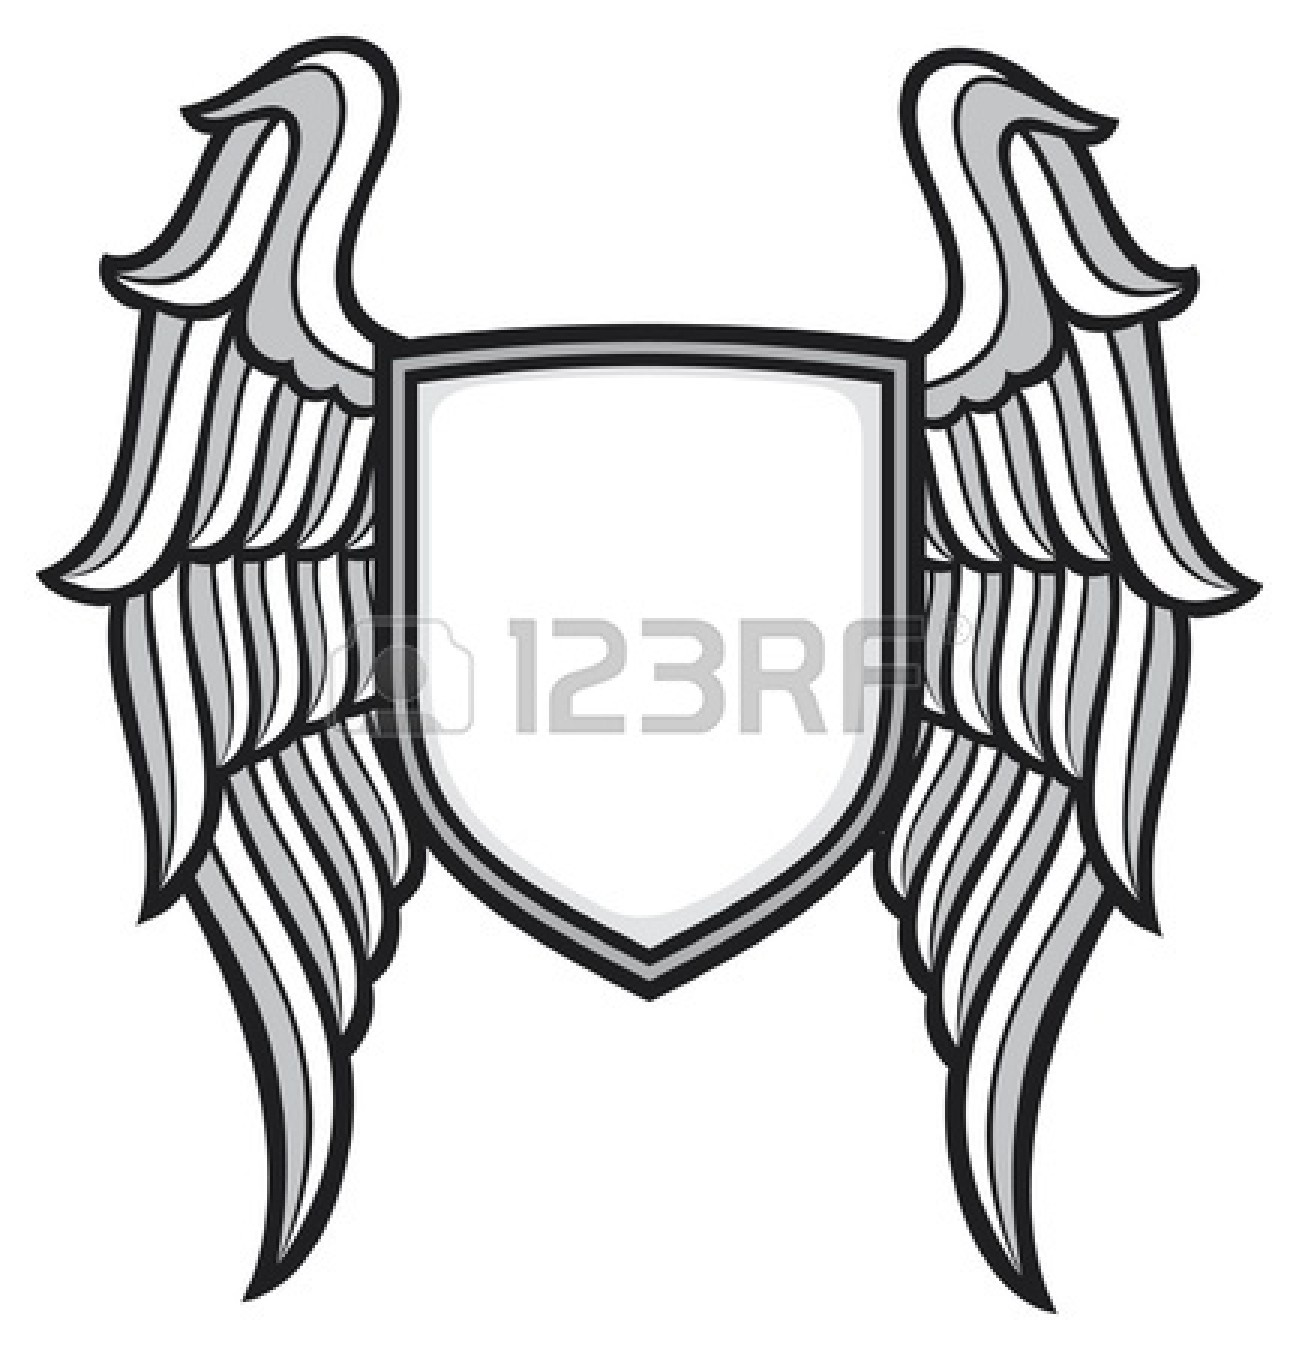 Eagle Wings Design Eagle 38132337 likewise Puissant Aigle Ou Griffon 9916910 also Tattoo Gallery By Jeff Kaplan also Tribal Tattoo Mit Mittelalterlichen Schwert Vektor 9633547 together with Angel Weeping Tattoo Flash2 114925251. on eagle crest designs